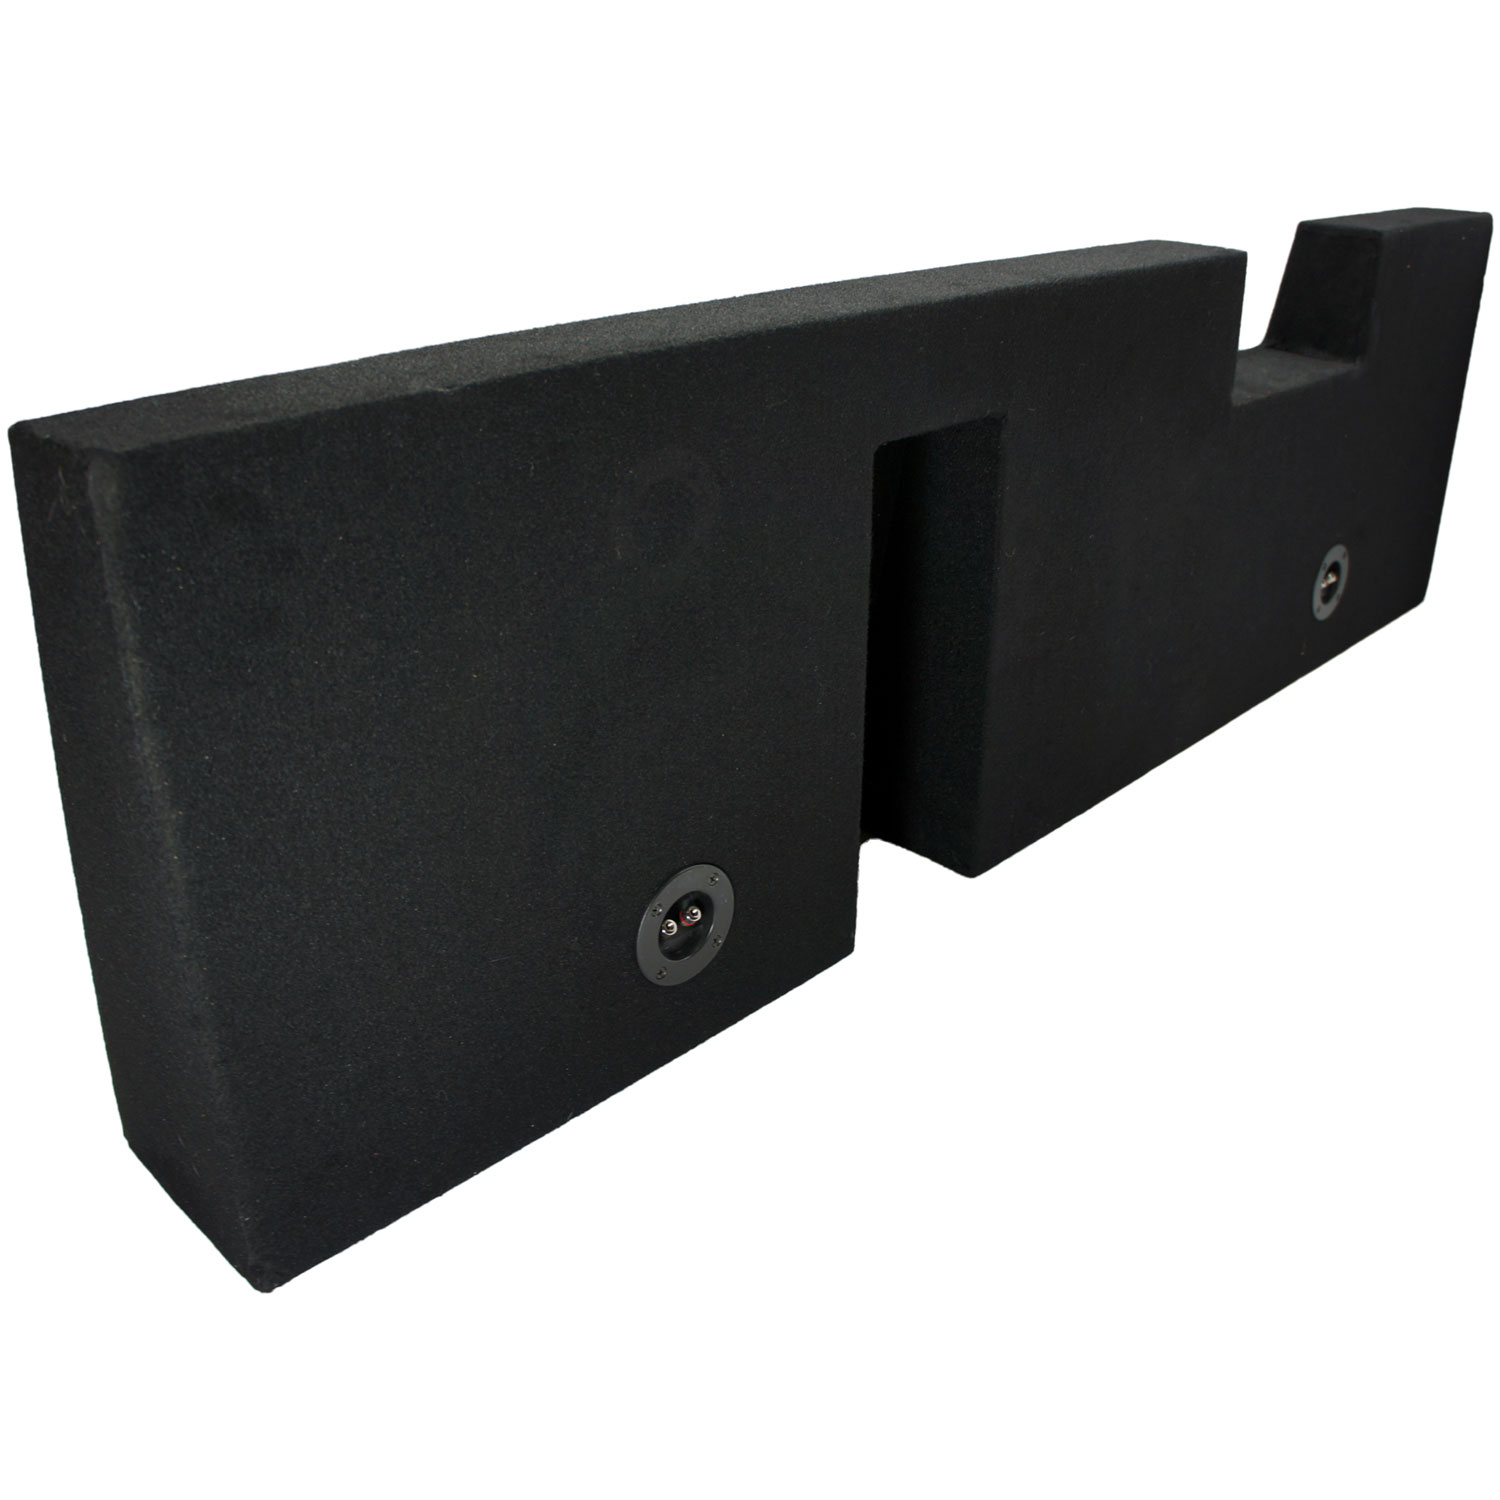 f250 crew cab subwoofer box  f250  free engine image for